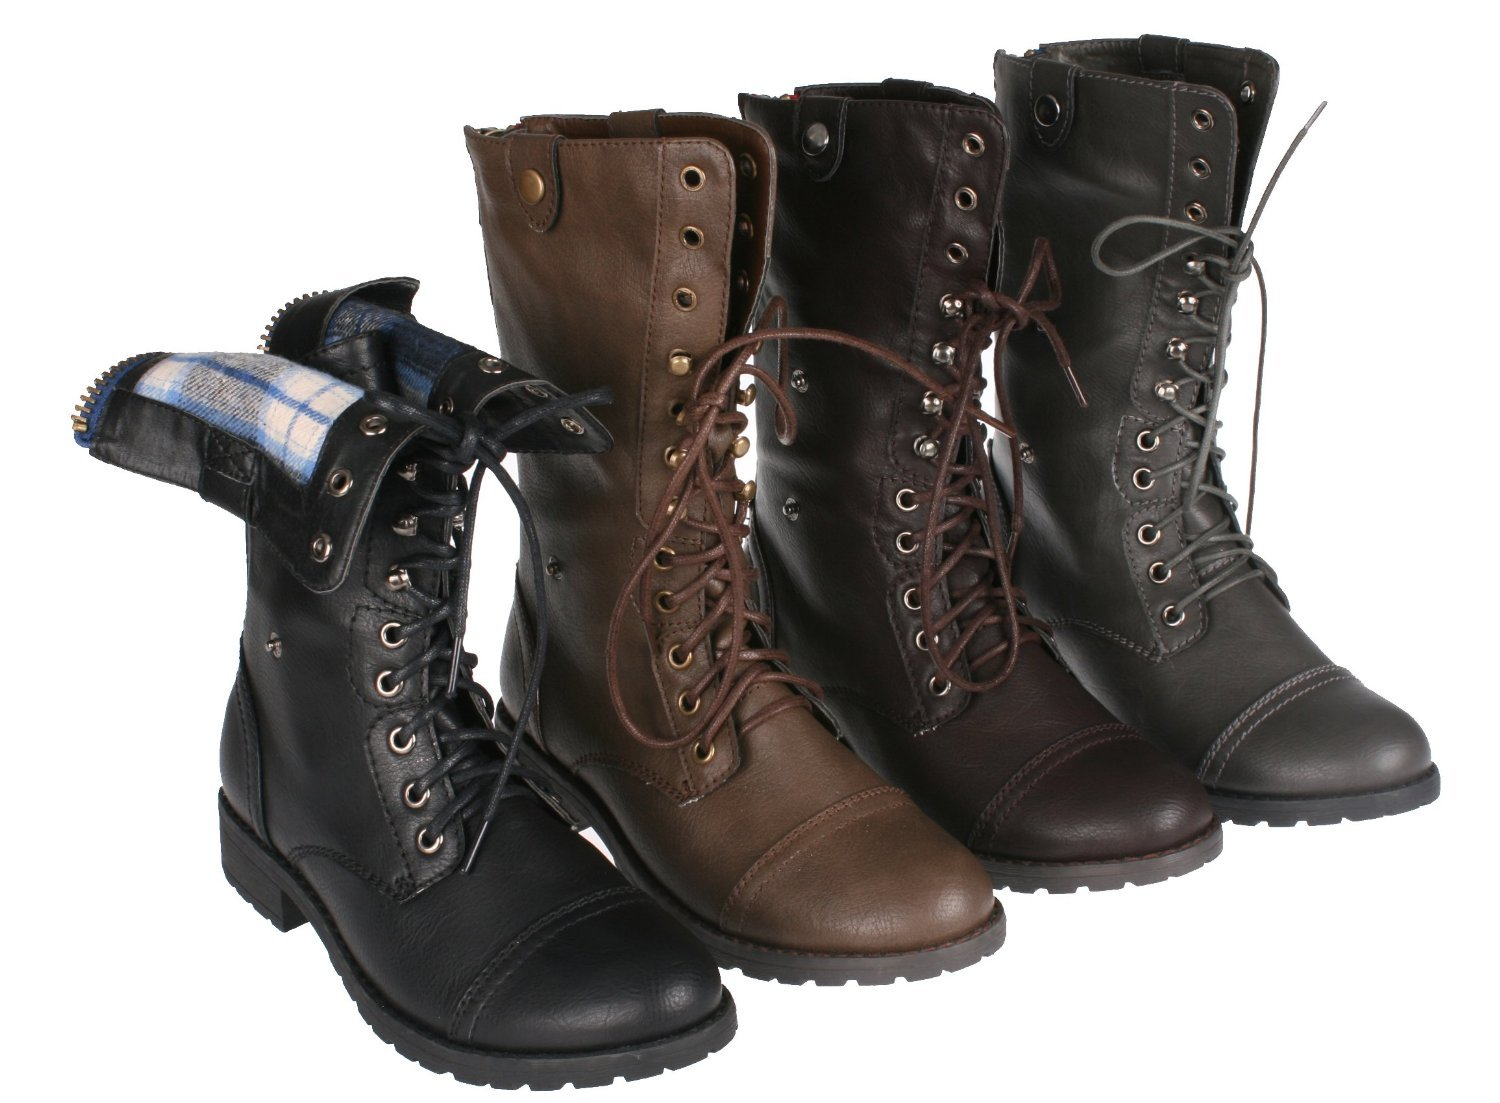 Where To Buy Combat Boots VLCnsPSz